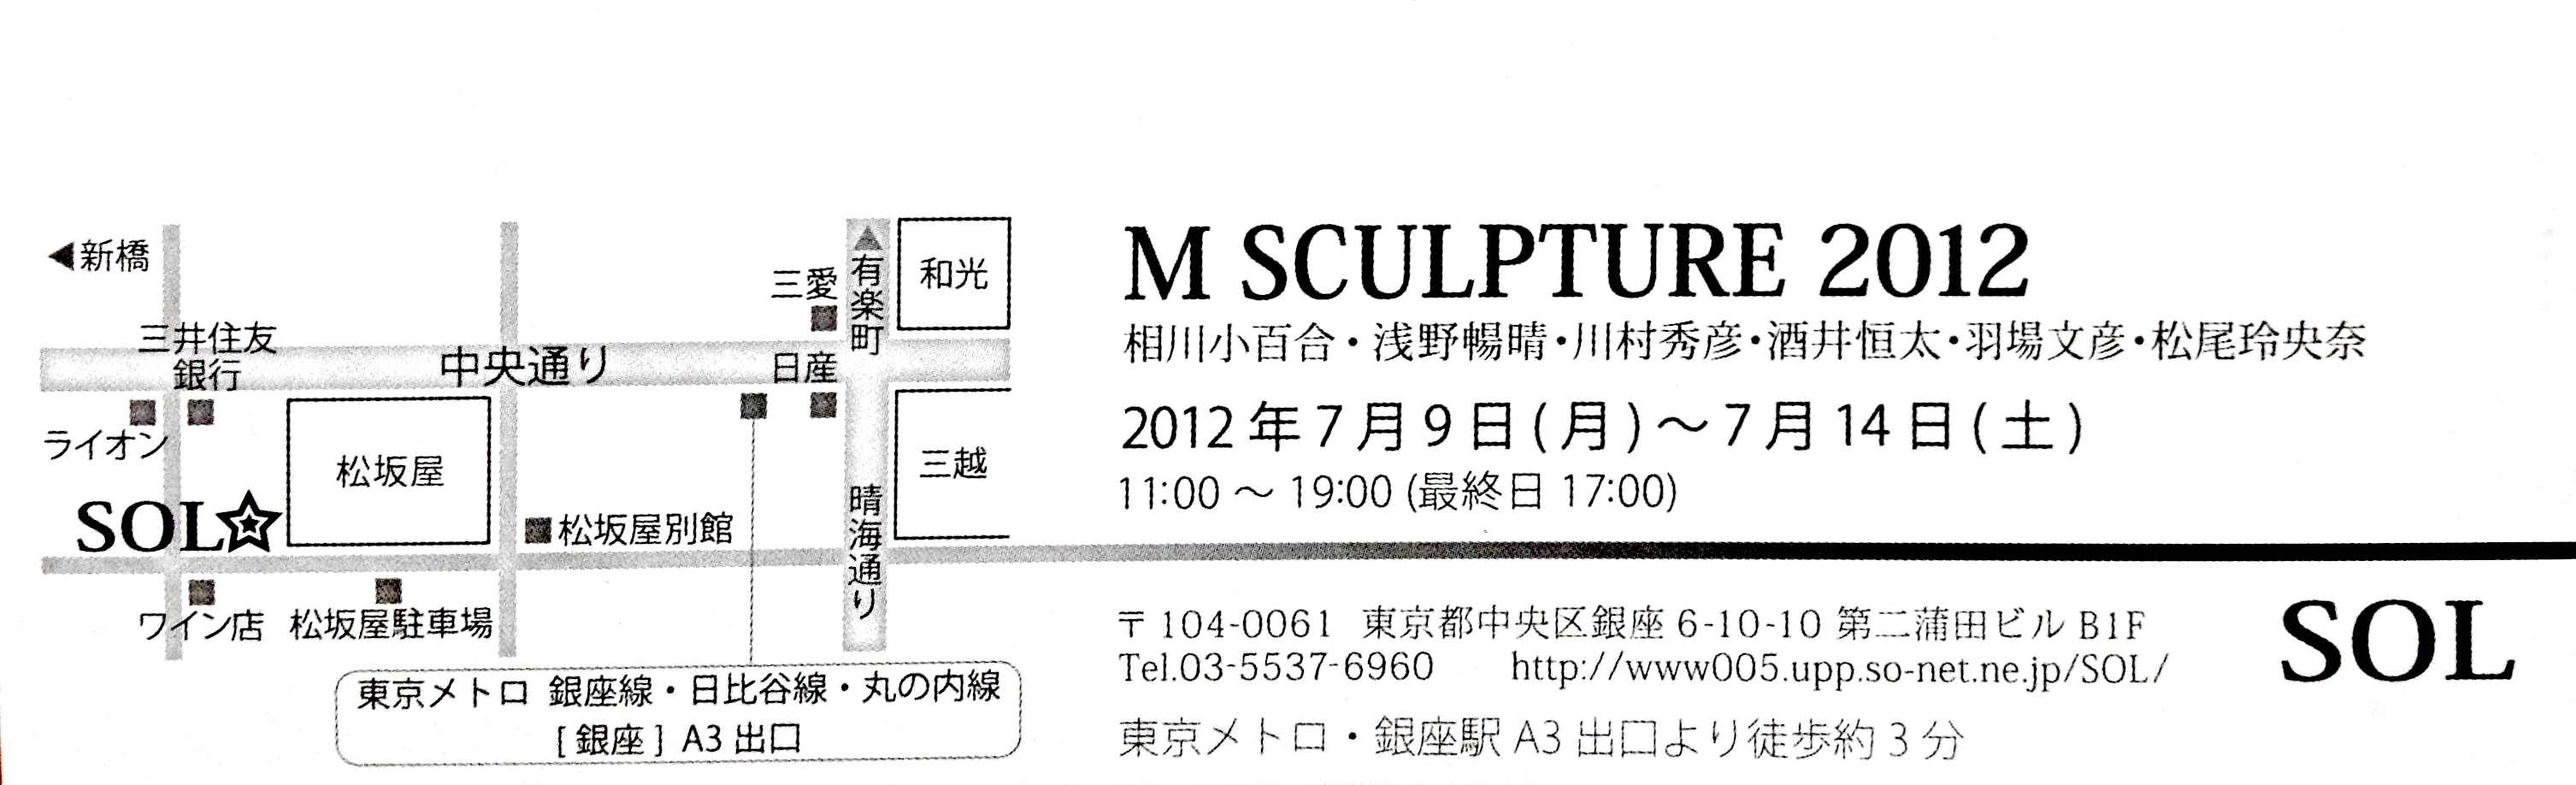 M SCULPUTURE 2012_e0176734_0141636.jpg